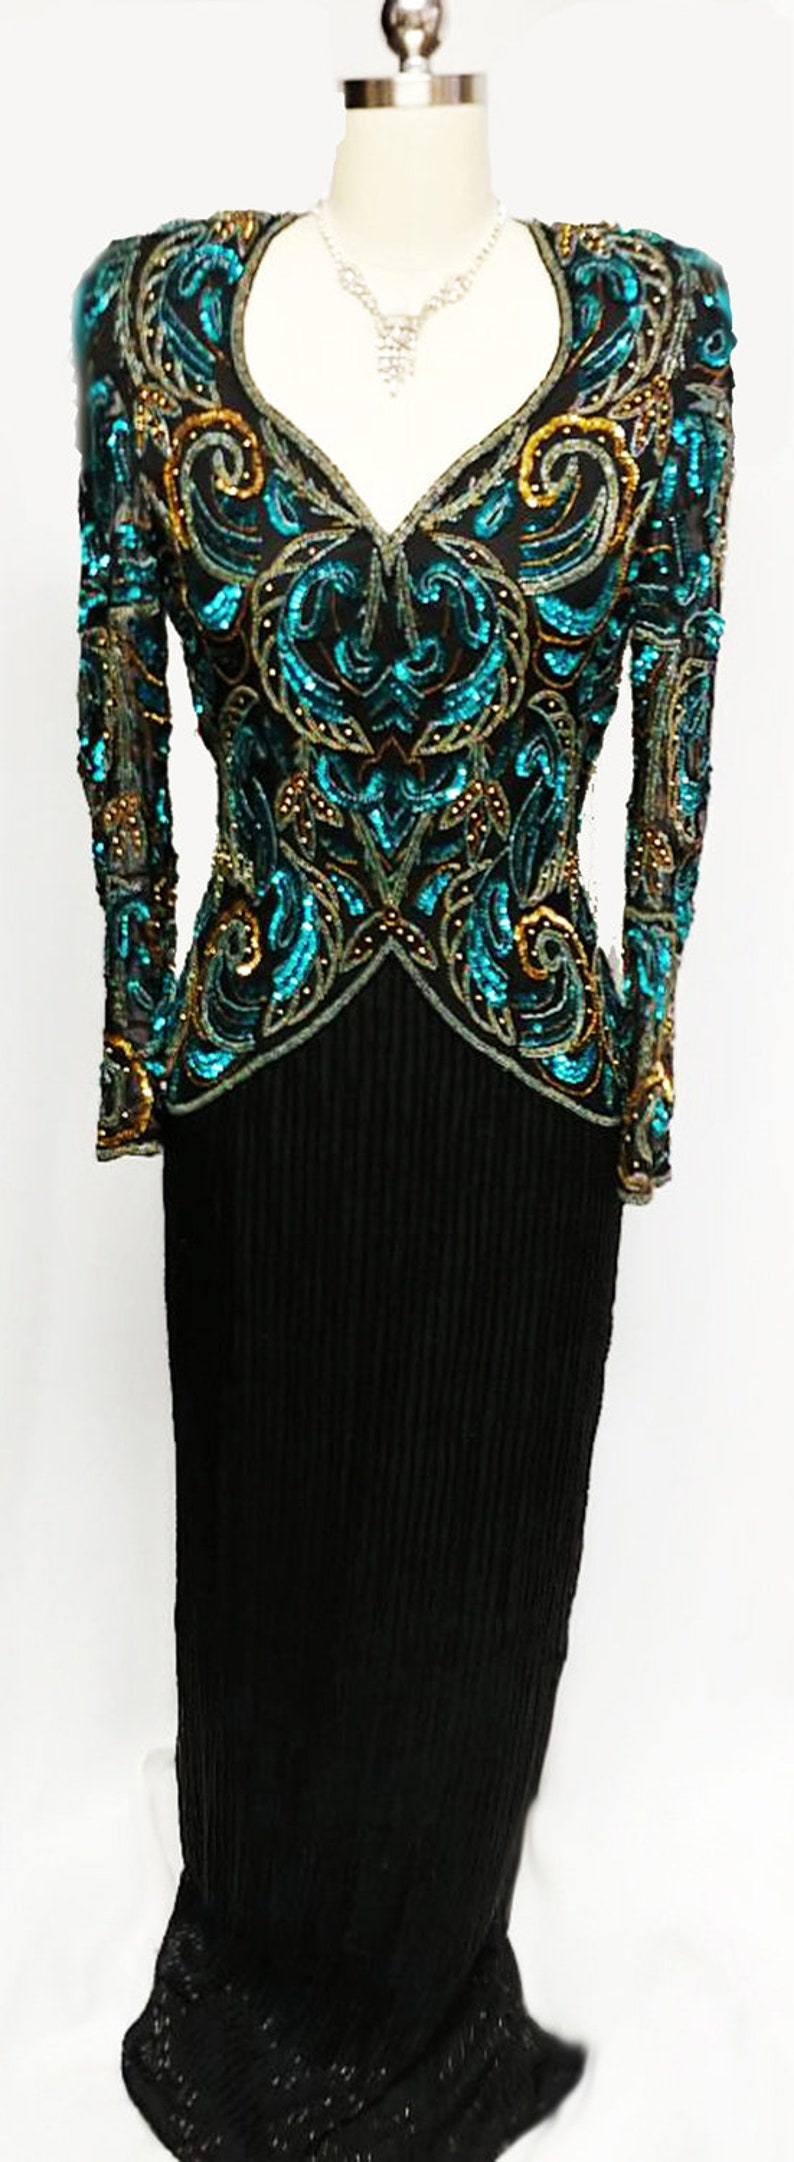 SALE Gorgeous Vintage Scala Black Silk Evening Gown Encrusted w Deep Sea Blue Sequins /& Gold Beads glamorous evening gown